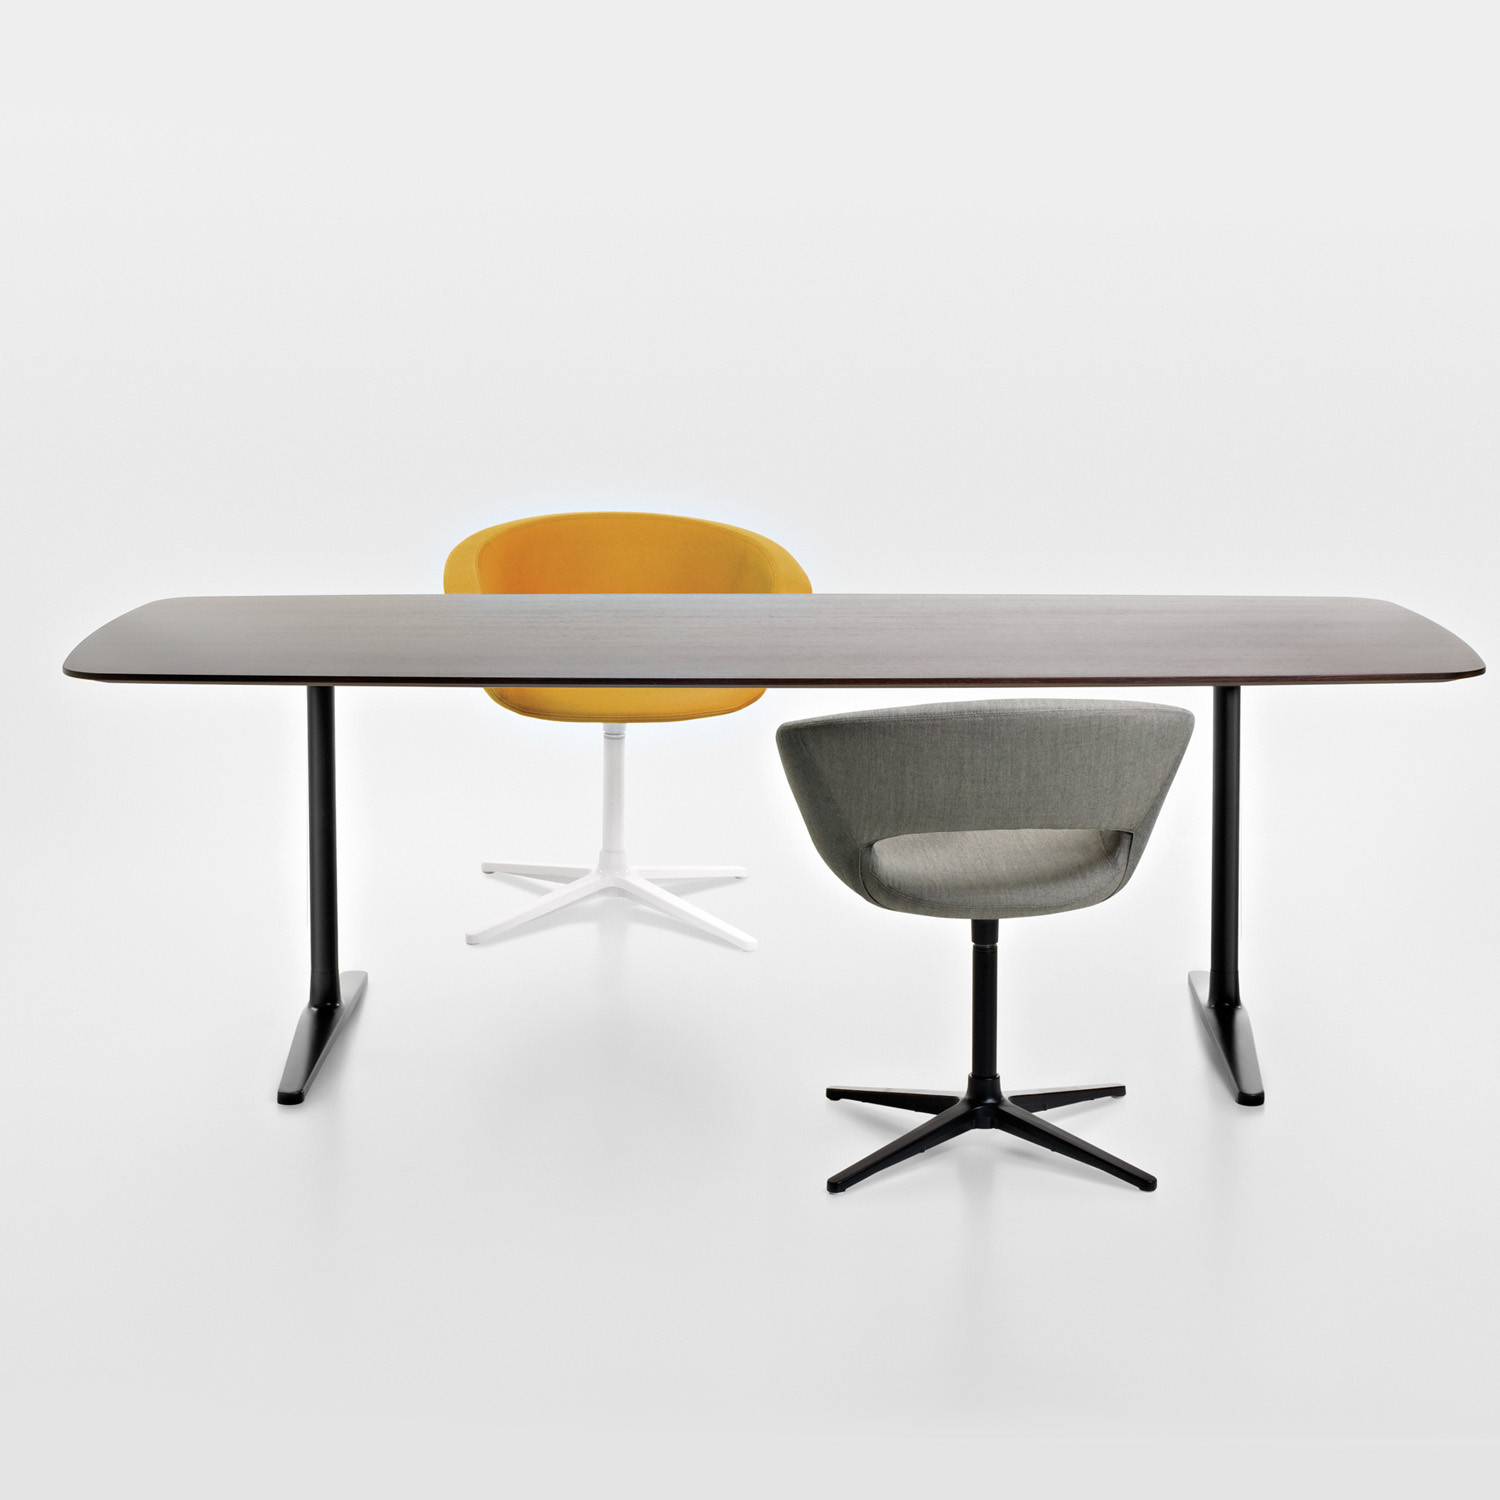 Maxdesign Plato Table